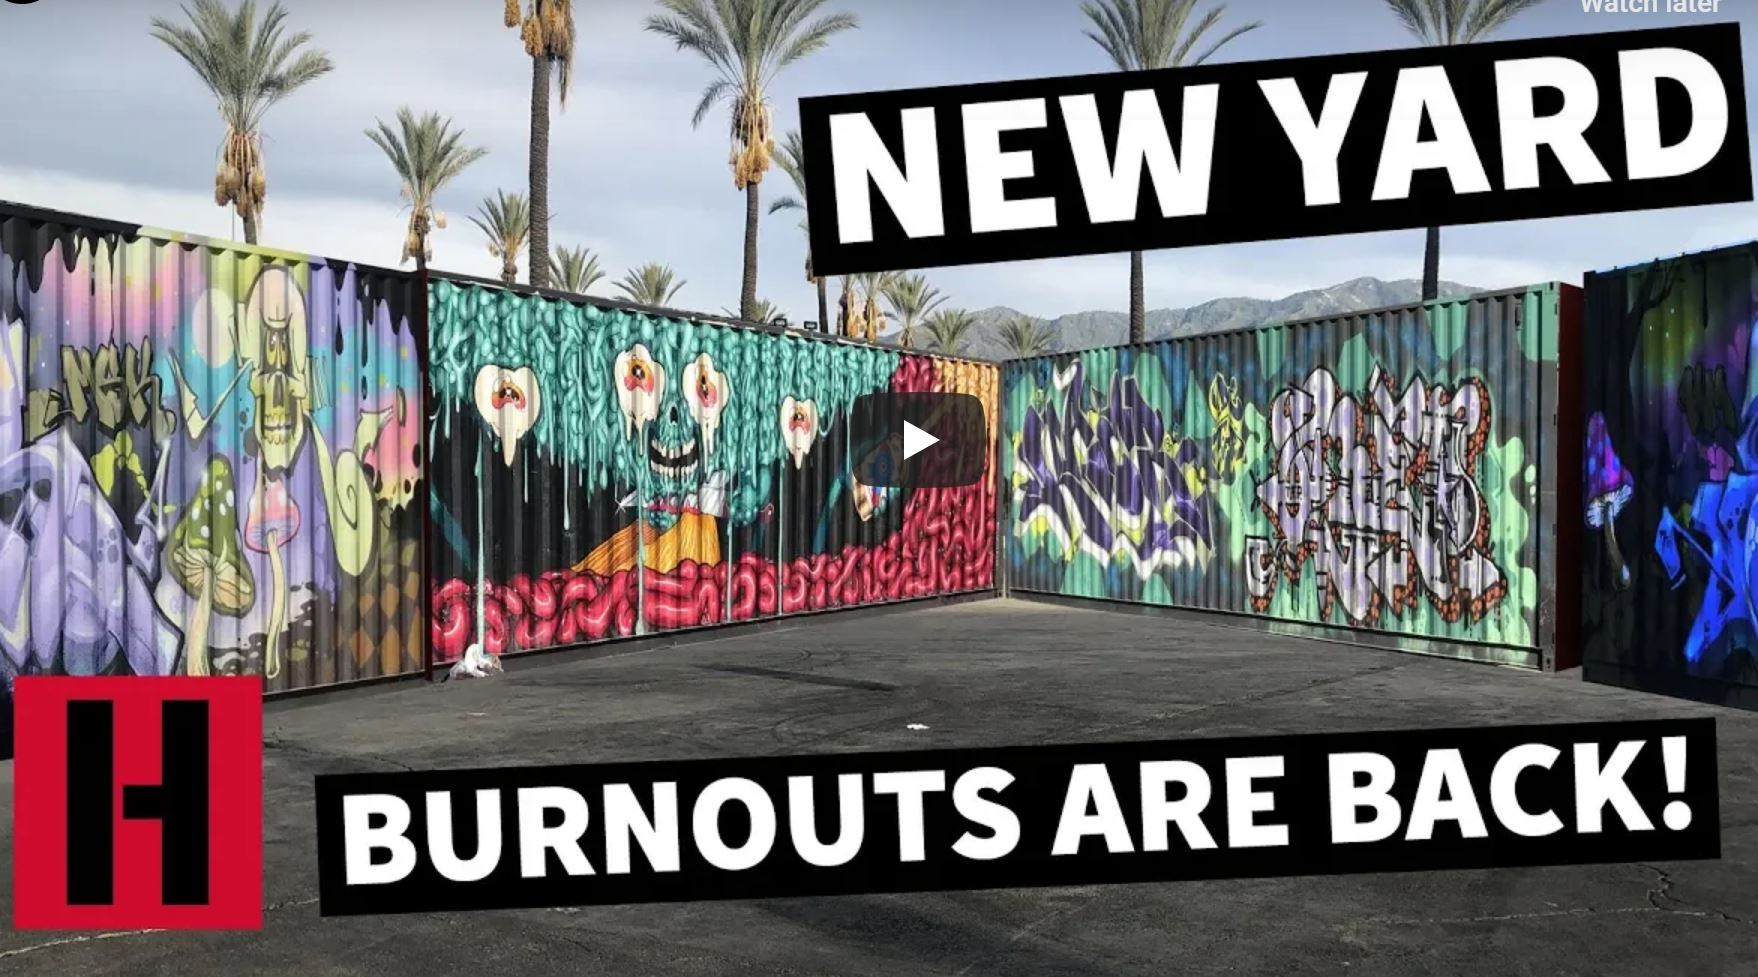 The Hoonigans Have A New Yard! After Being Shut Down From Doing Burnouts By The City, They Will Resume Now!